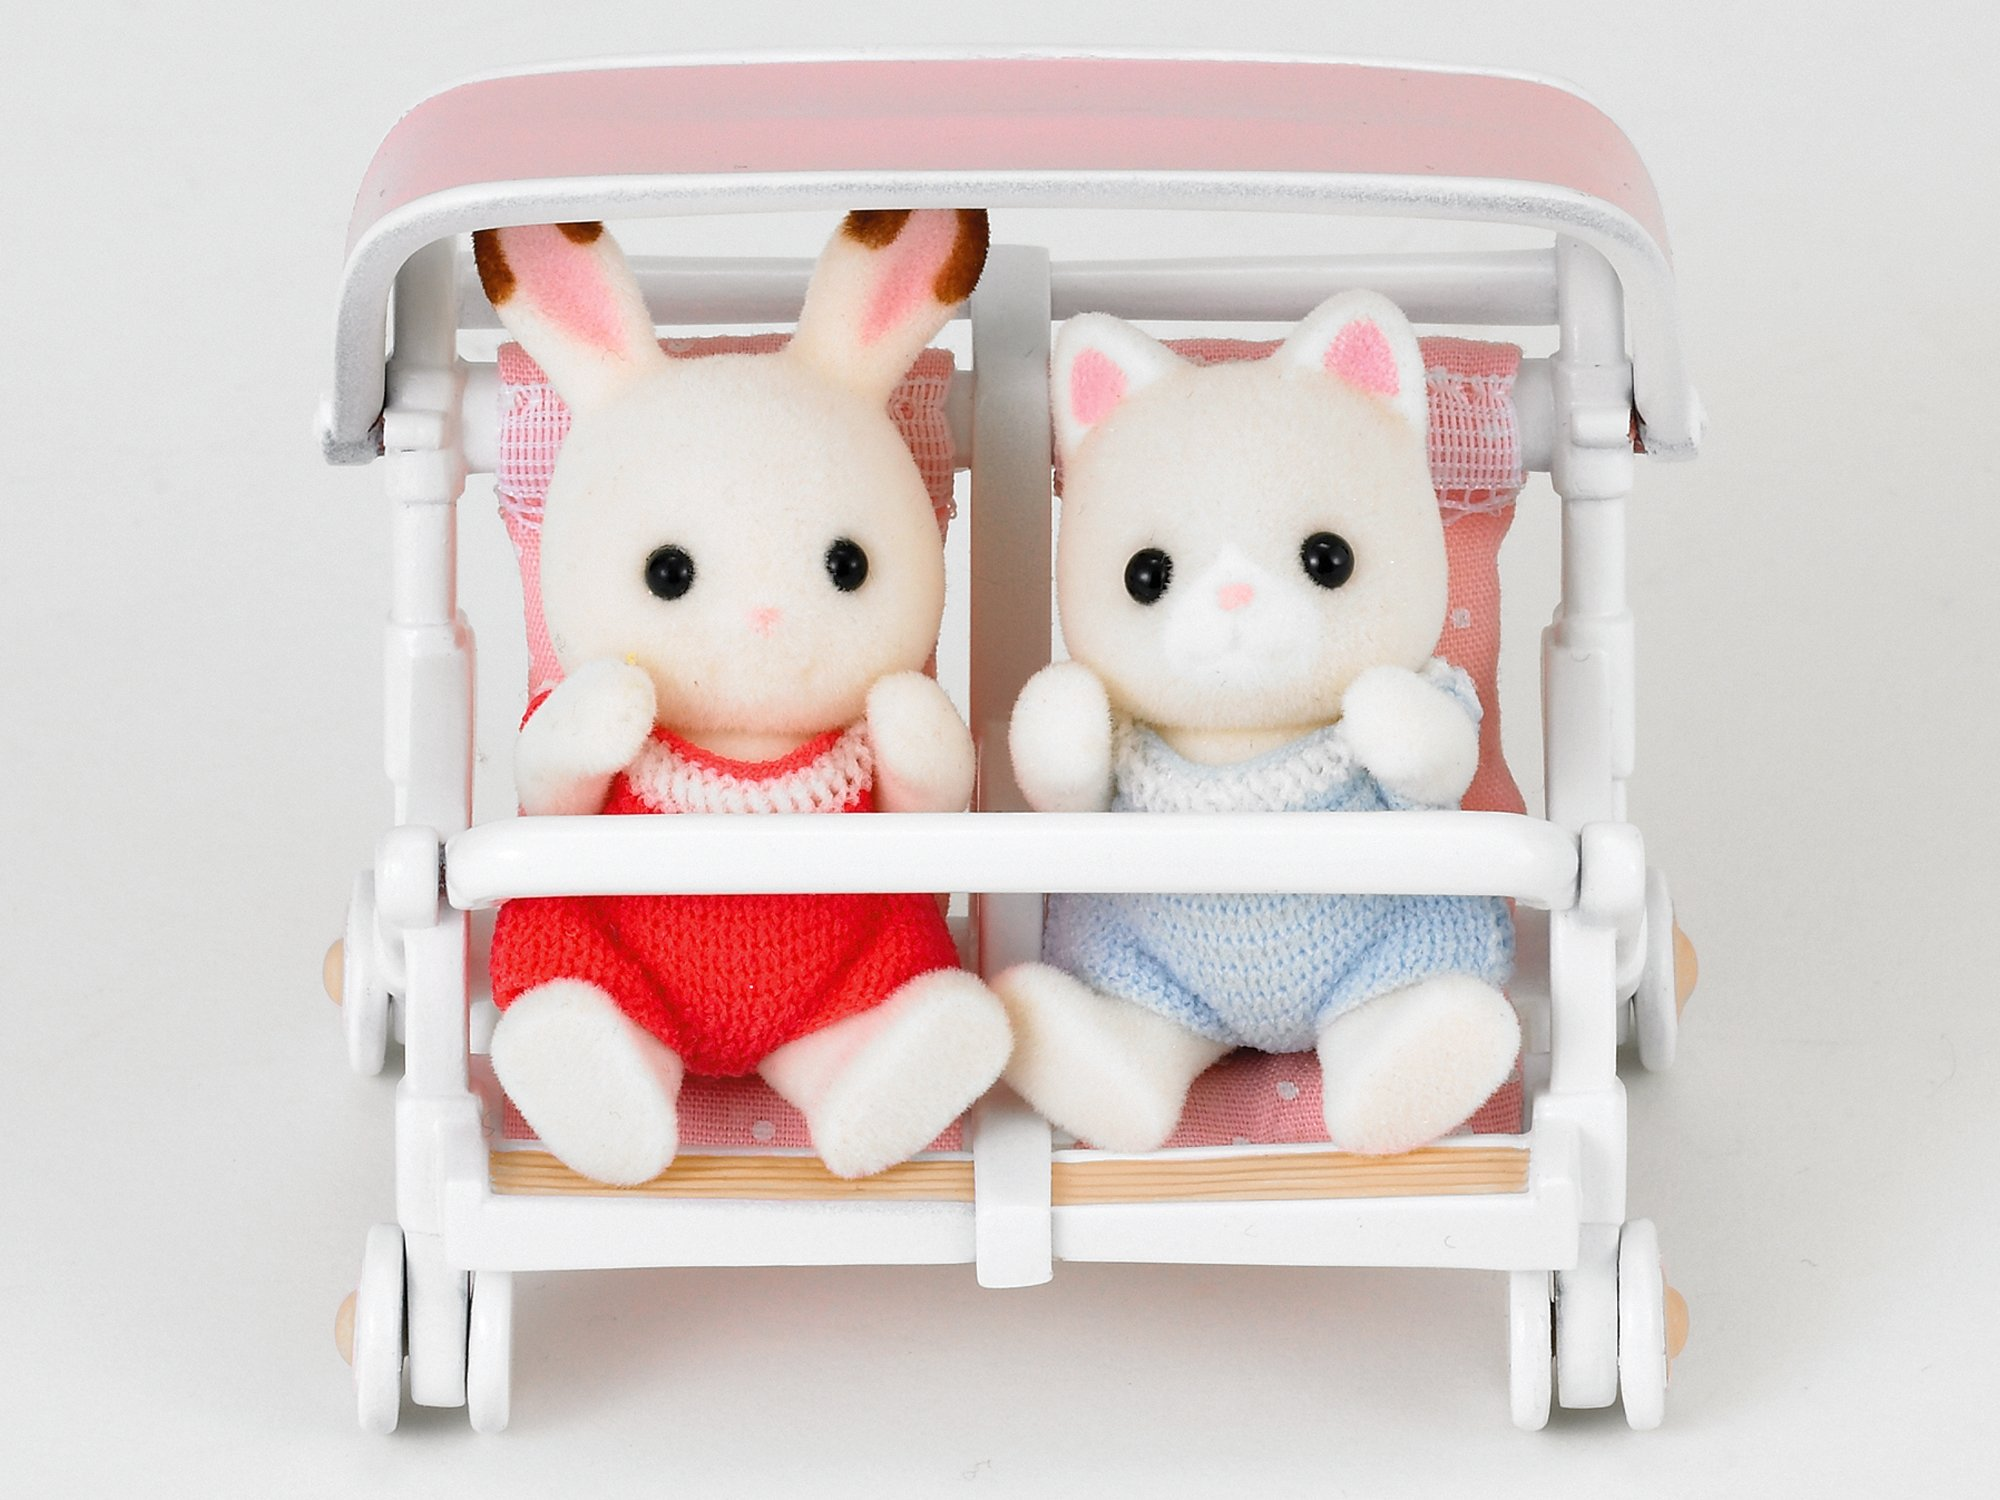 Sylvanian Families - Double Pushchair Sylvanian Families Accessory for your Sylvanian family home Pushchair for two babies Well-made with fine attention to detail 4